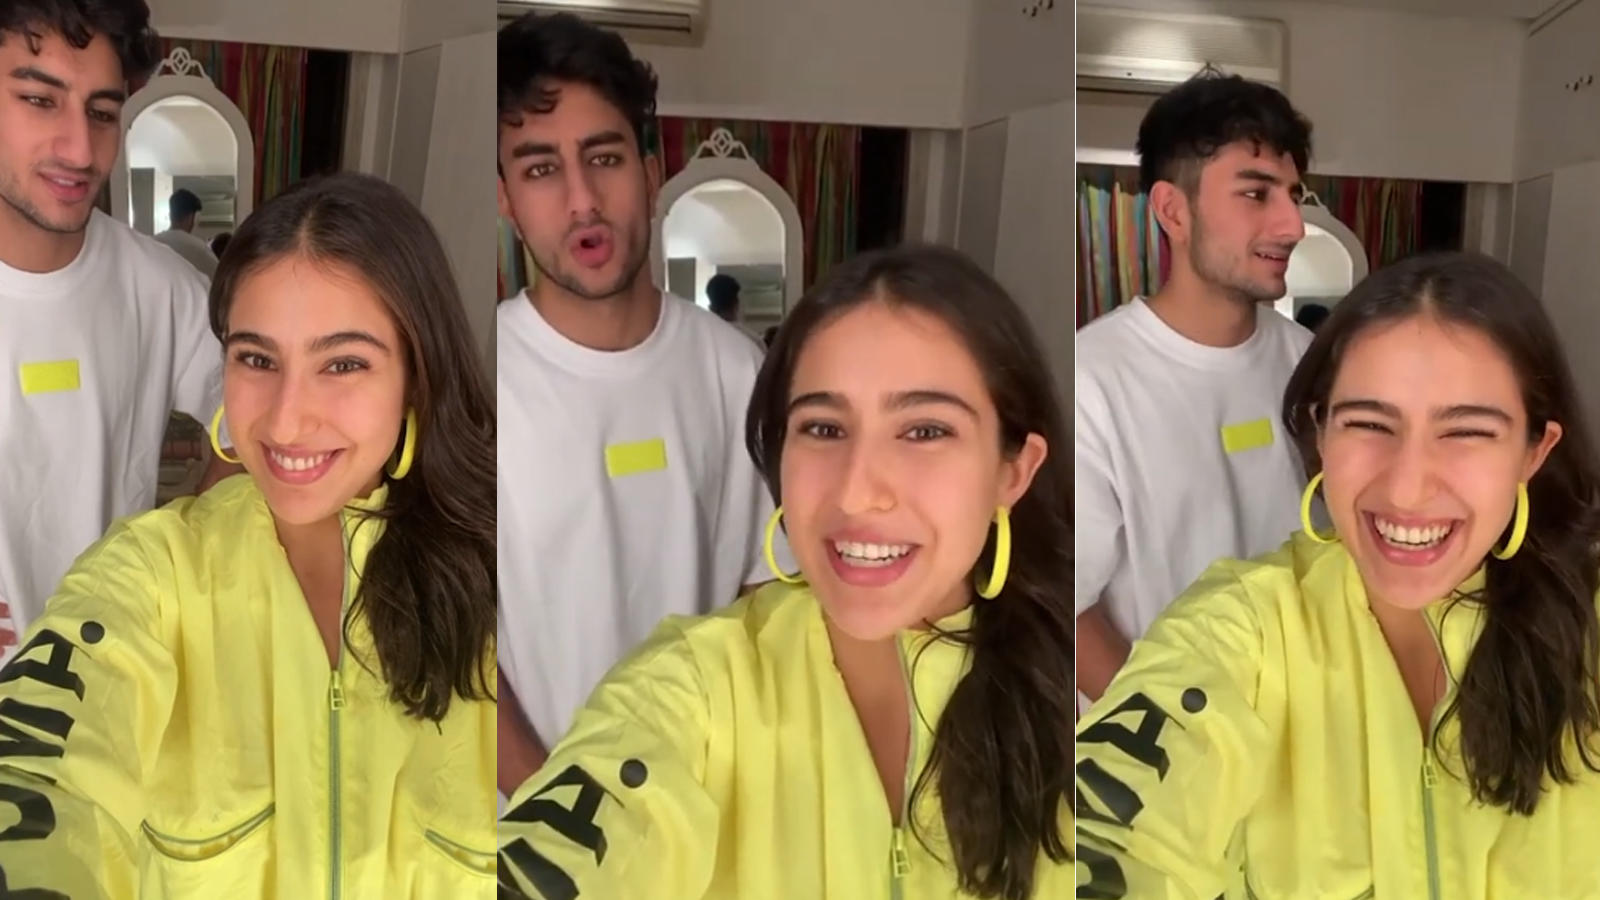 sara-ali-khan-and-ibrahim-ali-khan-are-back-with-another-hilarious-knock-knock-video-check-out